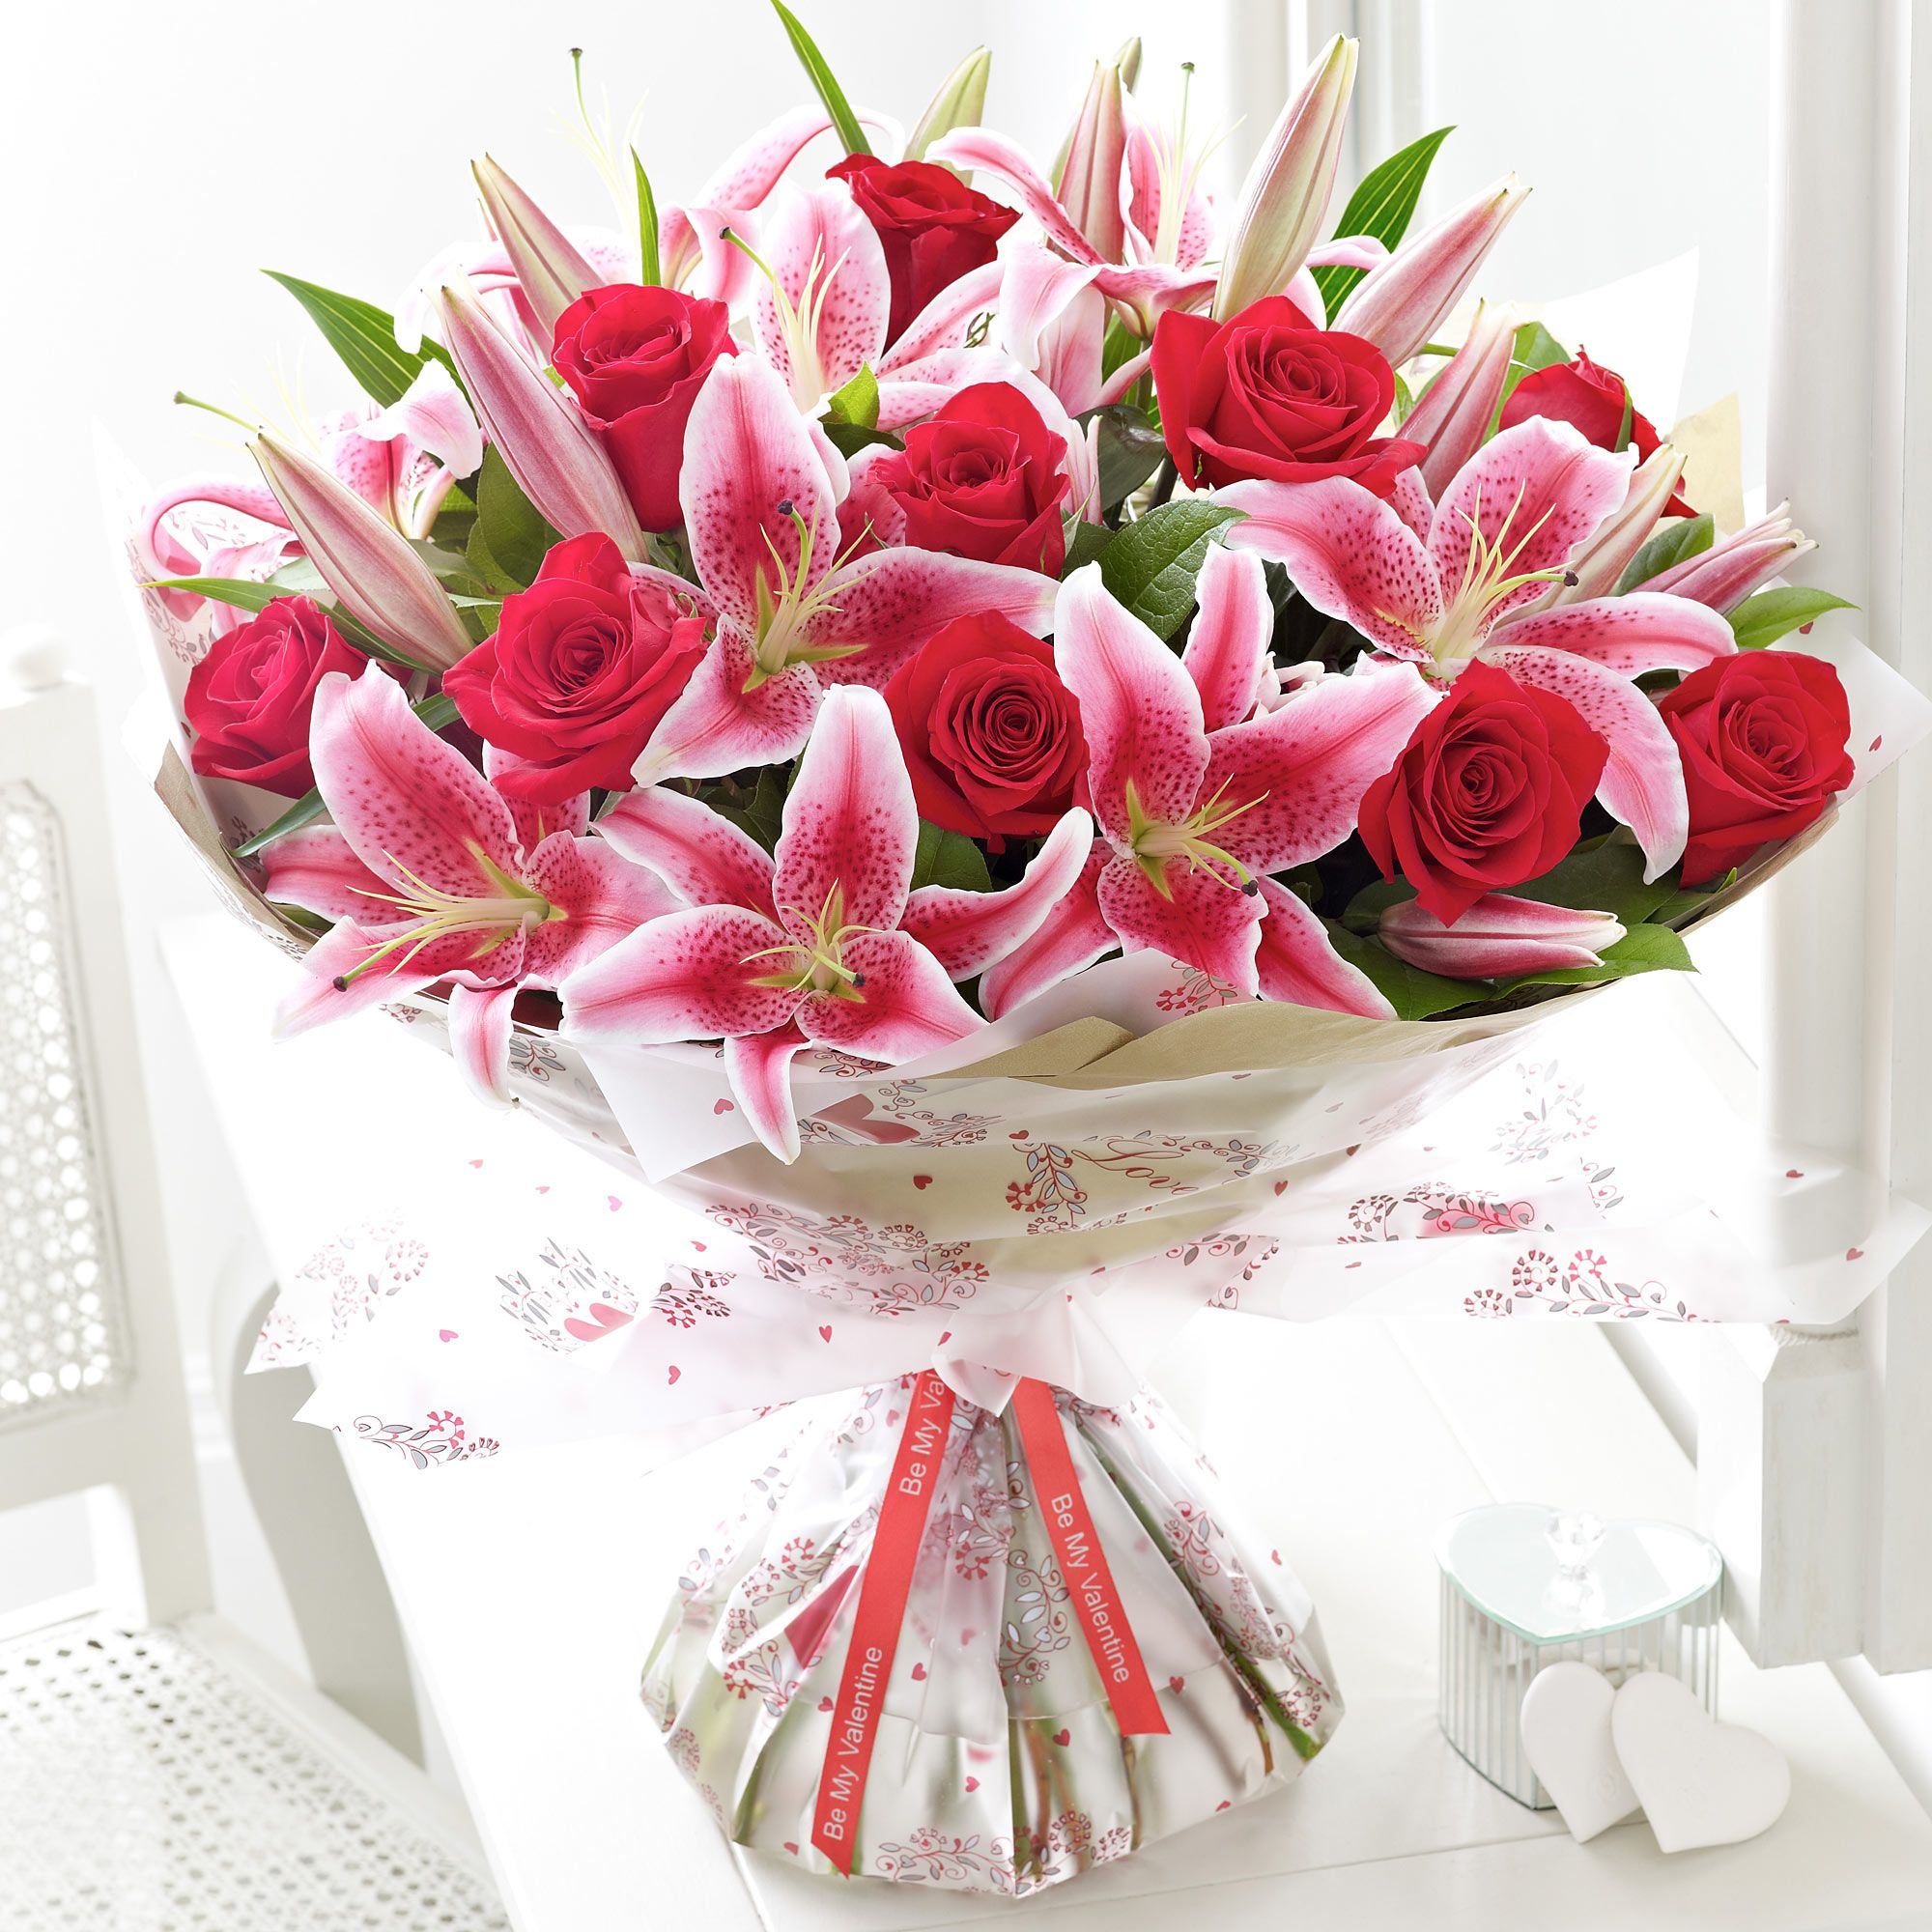 Stunning rose and lily bouquet Rose and lily bouquet